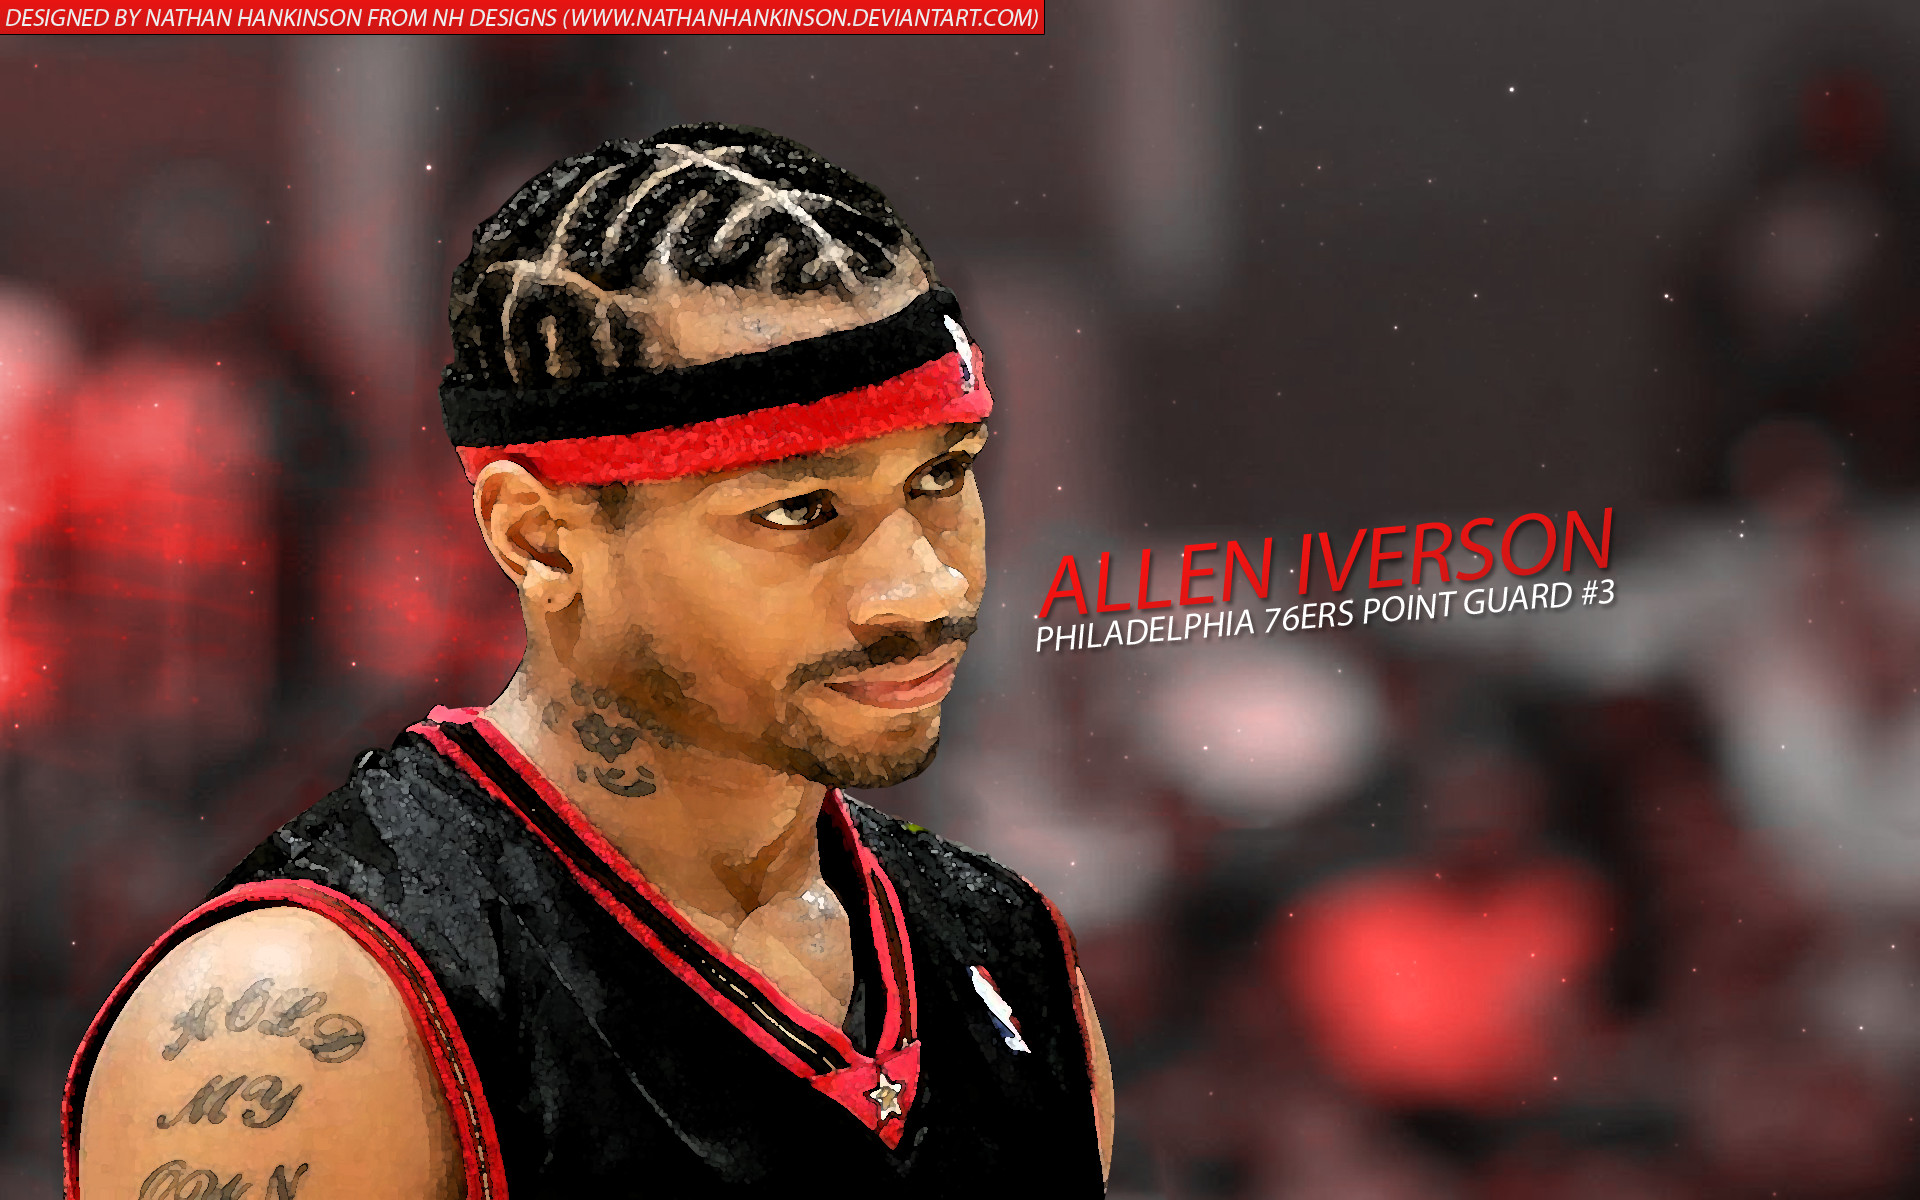 Cool Wallpapers Hd Iphone 7 Allen Iverson Wallpapers 64 Images